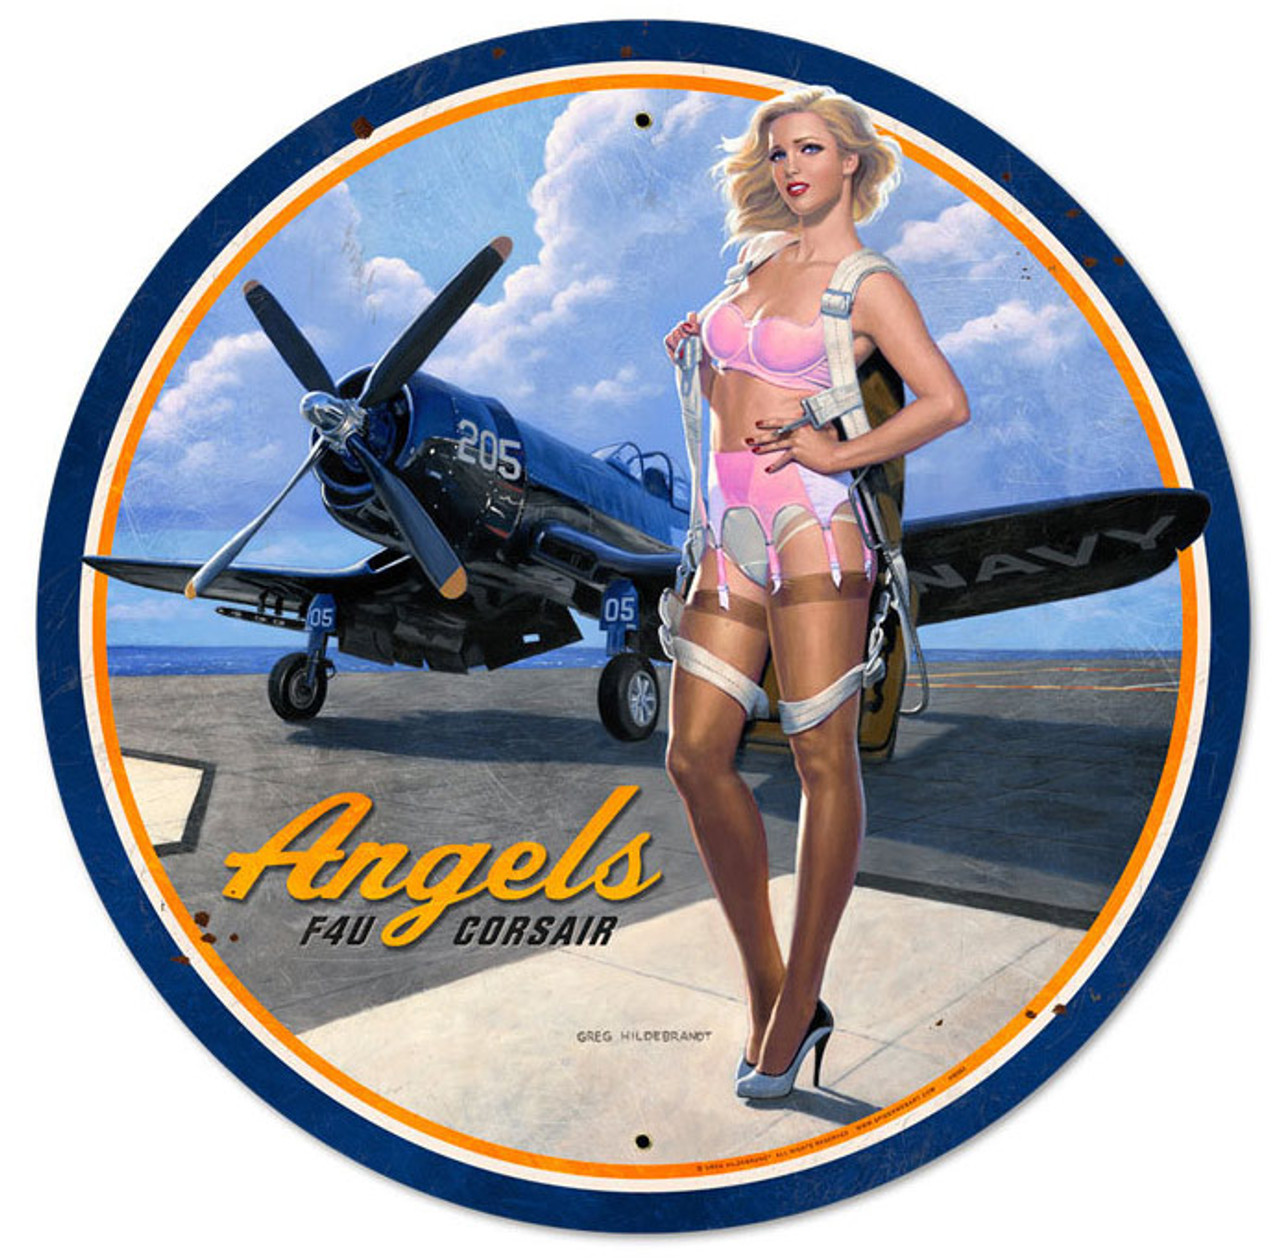 Retro Angels Corsair Round Metal Sign 28 x 28 Inches